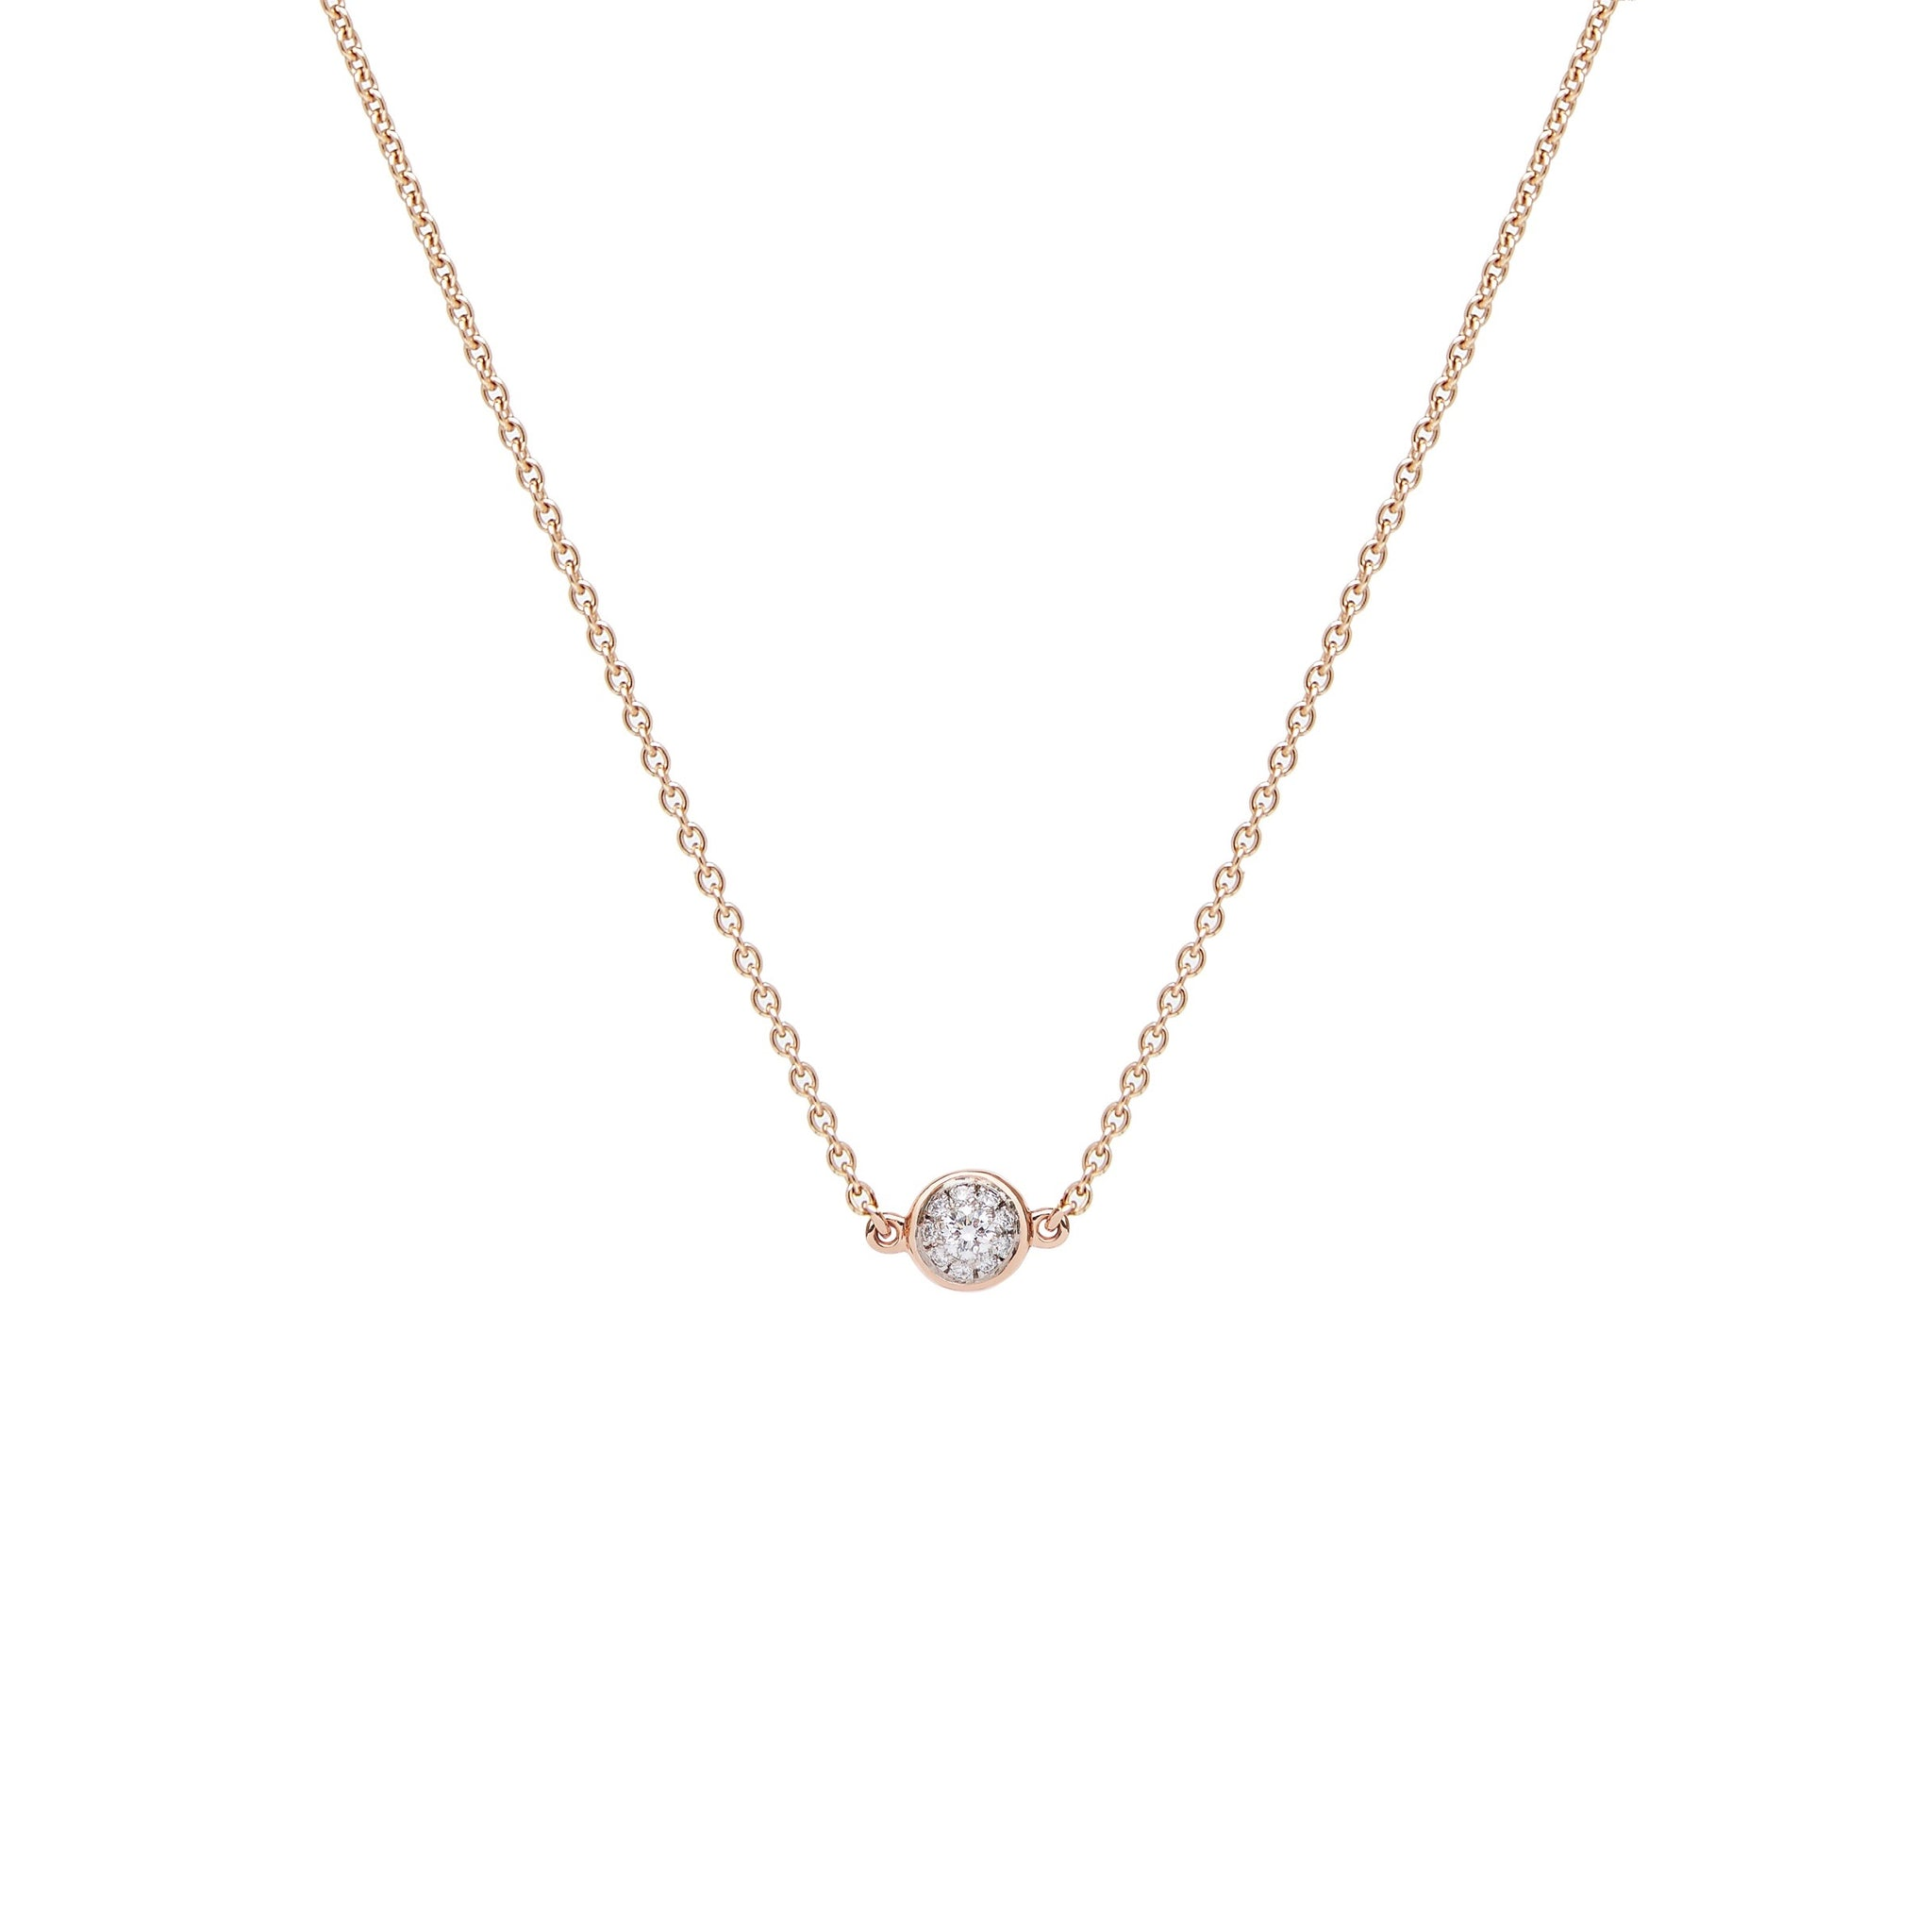 Mana Necklace - Rose Gold and Diamond